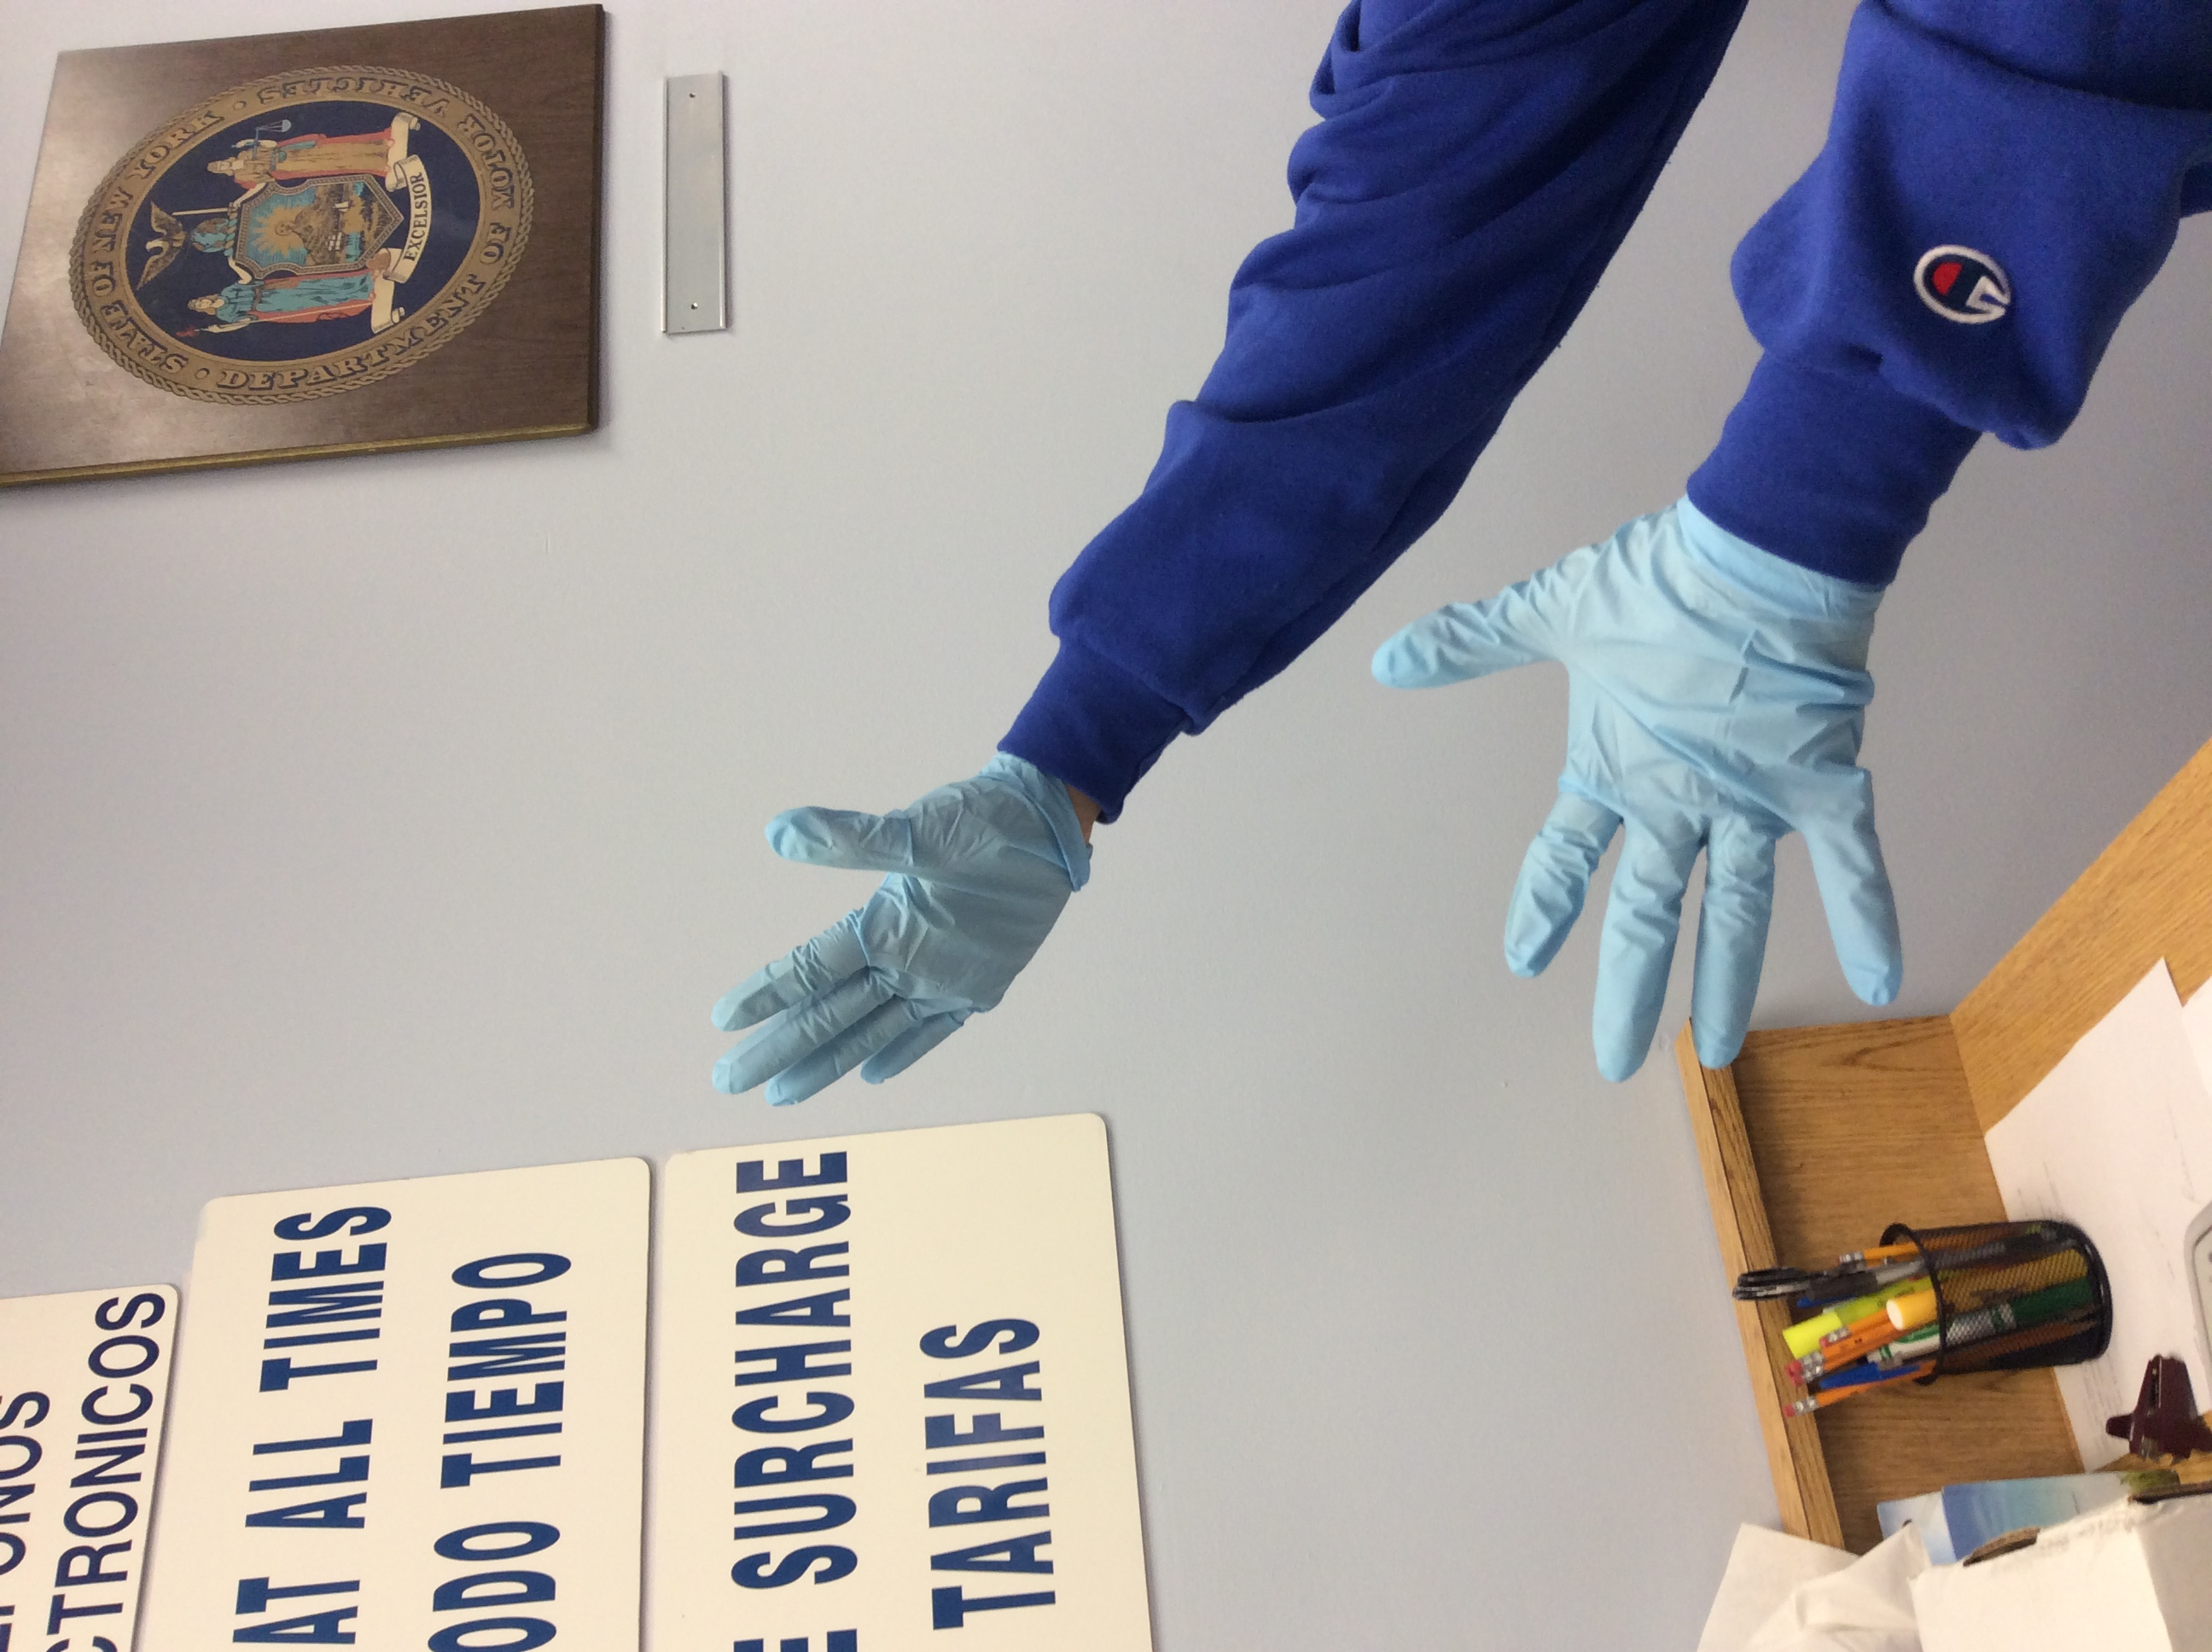 Clerks wearing latex blue gloves as a precaution after motorist claimed to be sick and from Africa.